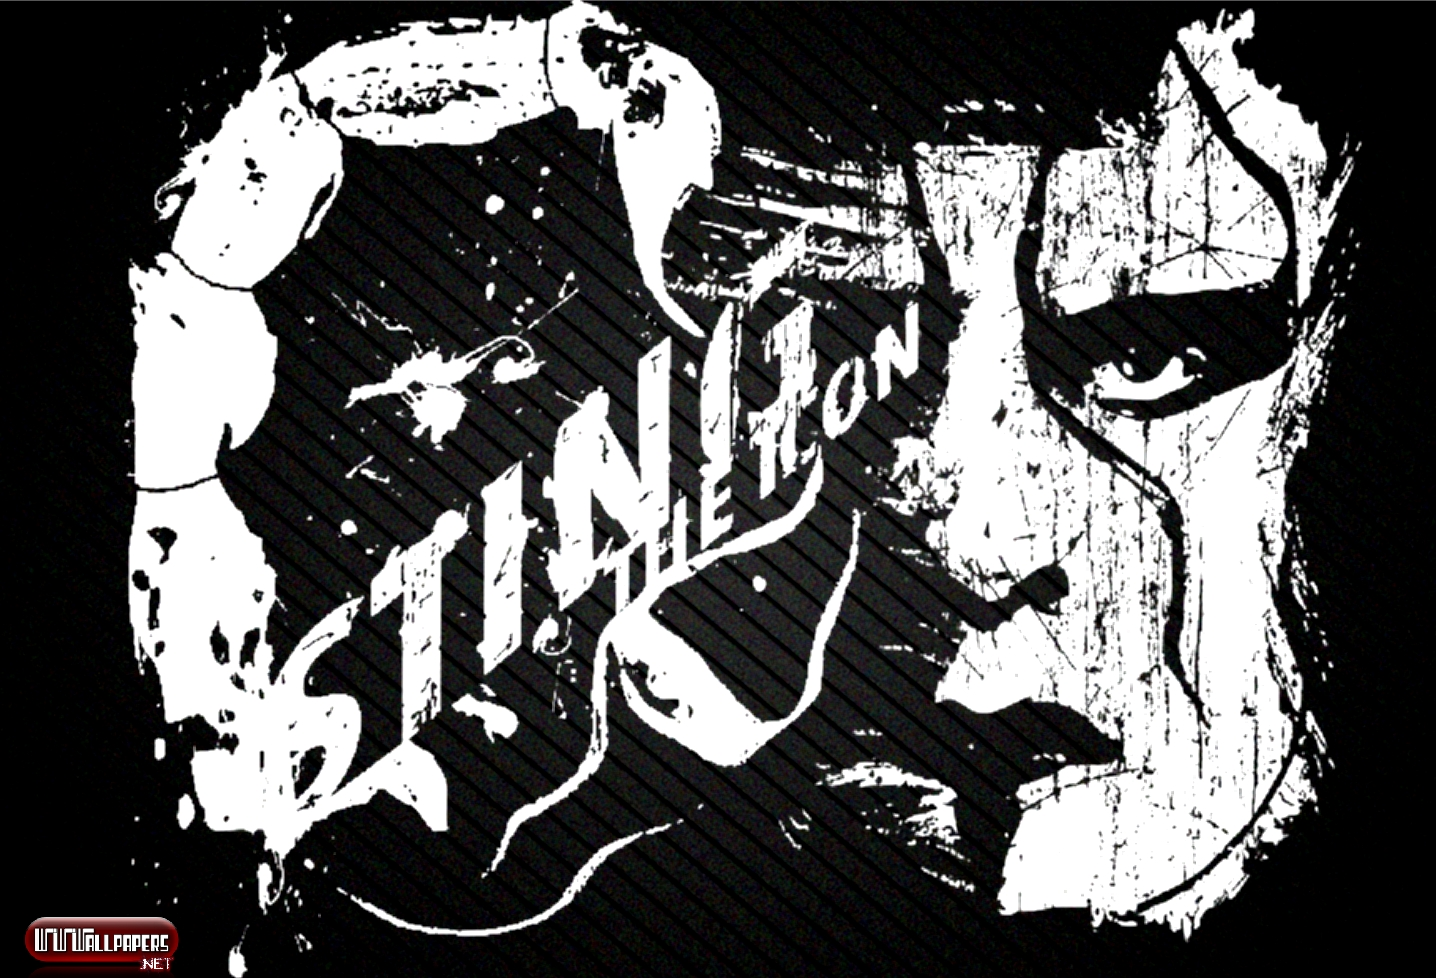 Wcw Wallpaper WWE Sting Wallpaper HD...